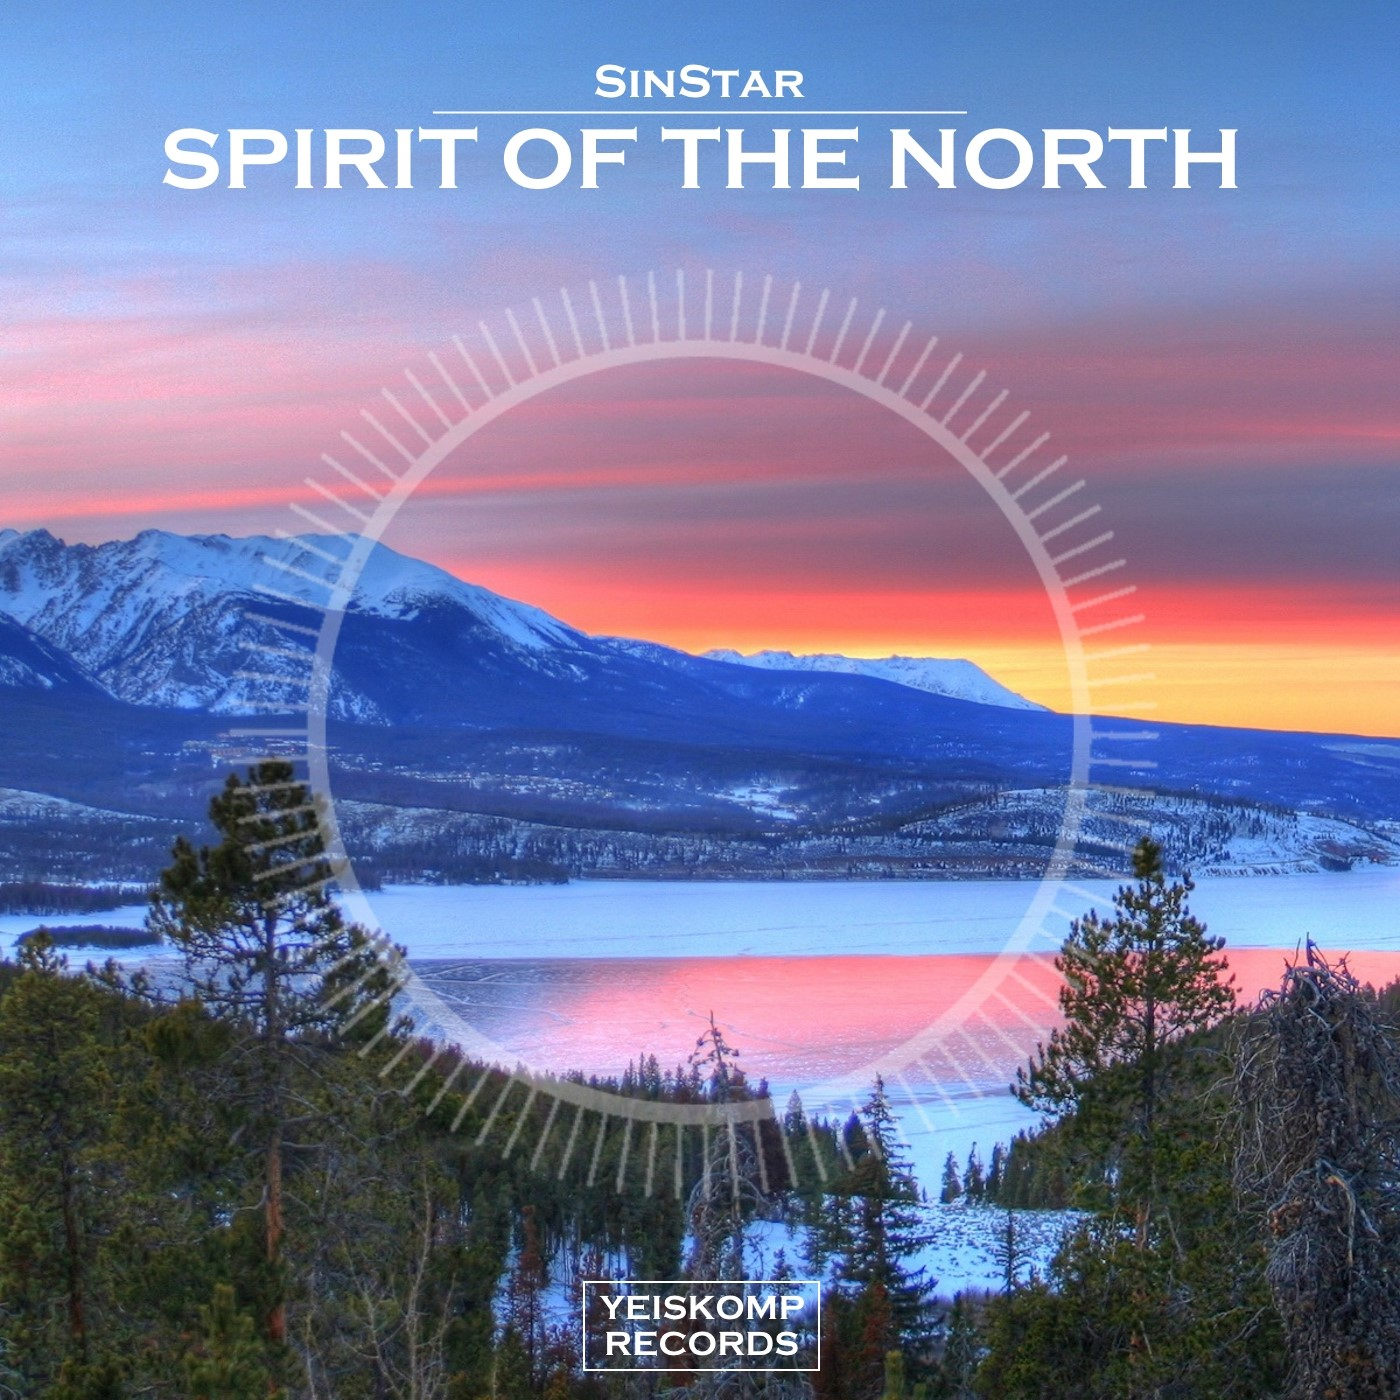 SinStar - Spirit Of The North (Original Mix)